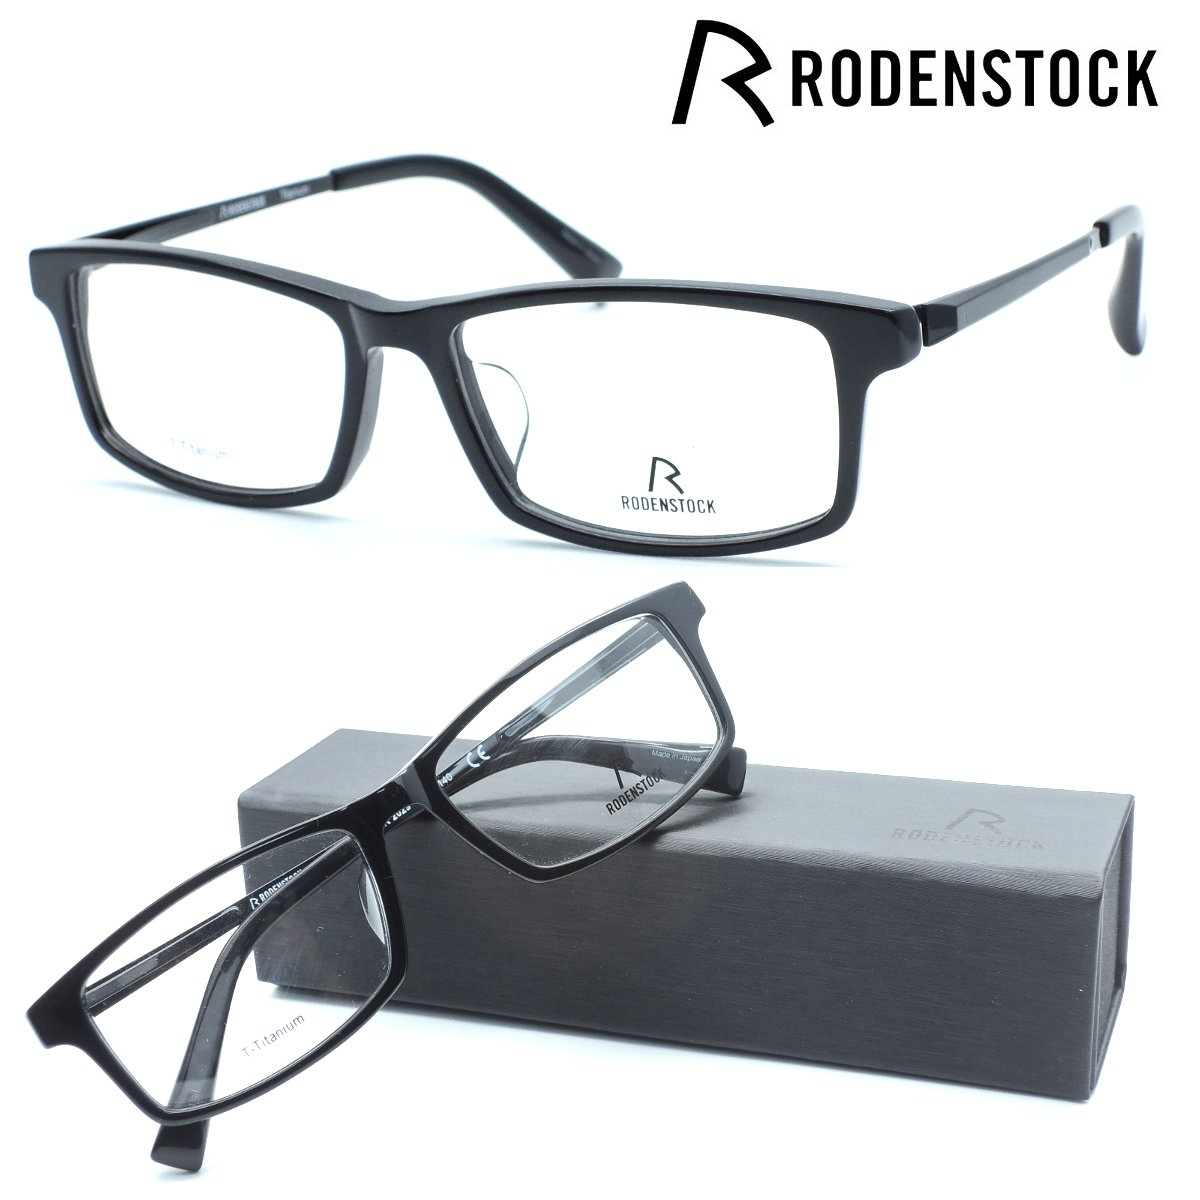 【RODENSTOCK】ローデンストックメガネ R2029 col.A 度付又は度無レンズセット【正規品】【店内全品送料無料】